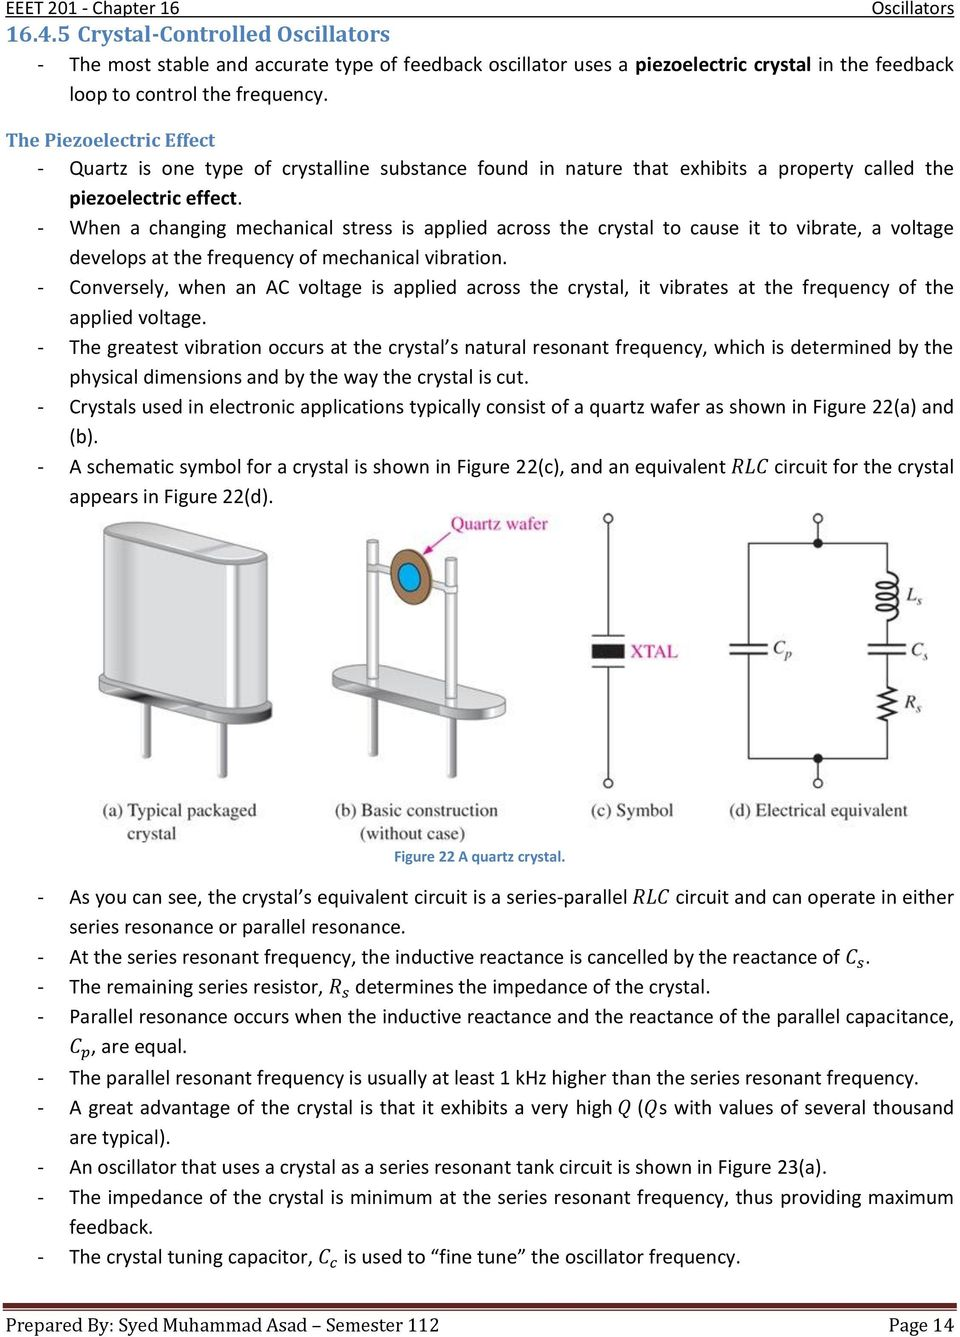 Chapter 16 Oscillators Pdf Introduction To Quartz Frequency Standards Oscillator Circuit Types When A Changing Mechanical Stress Is Applied Across The Crystal Cause It Vibrate